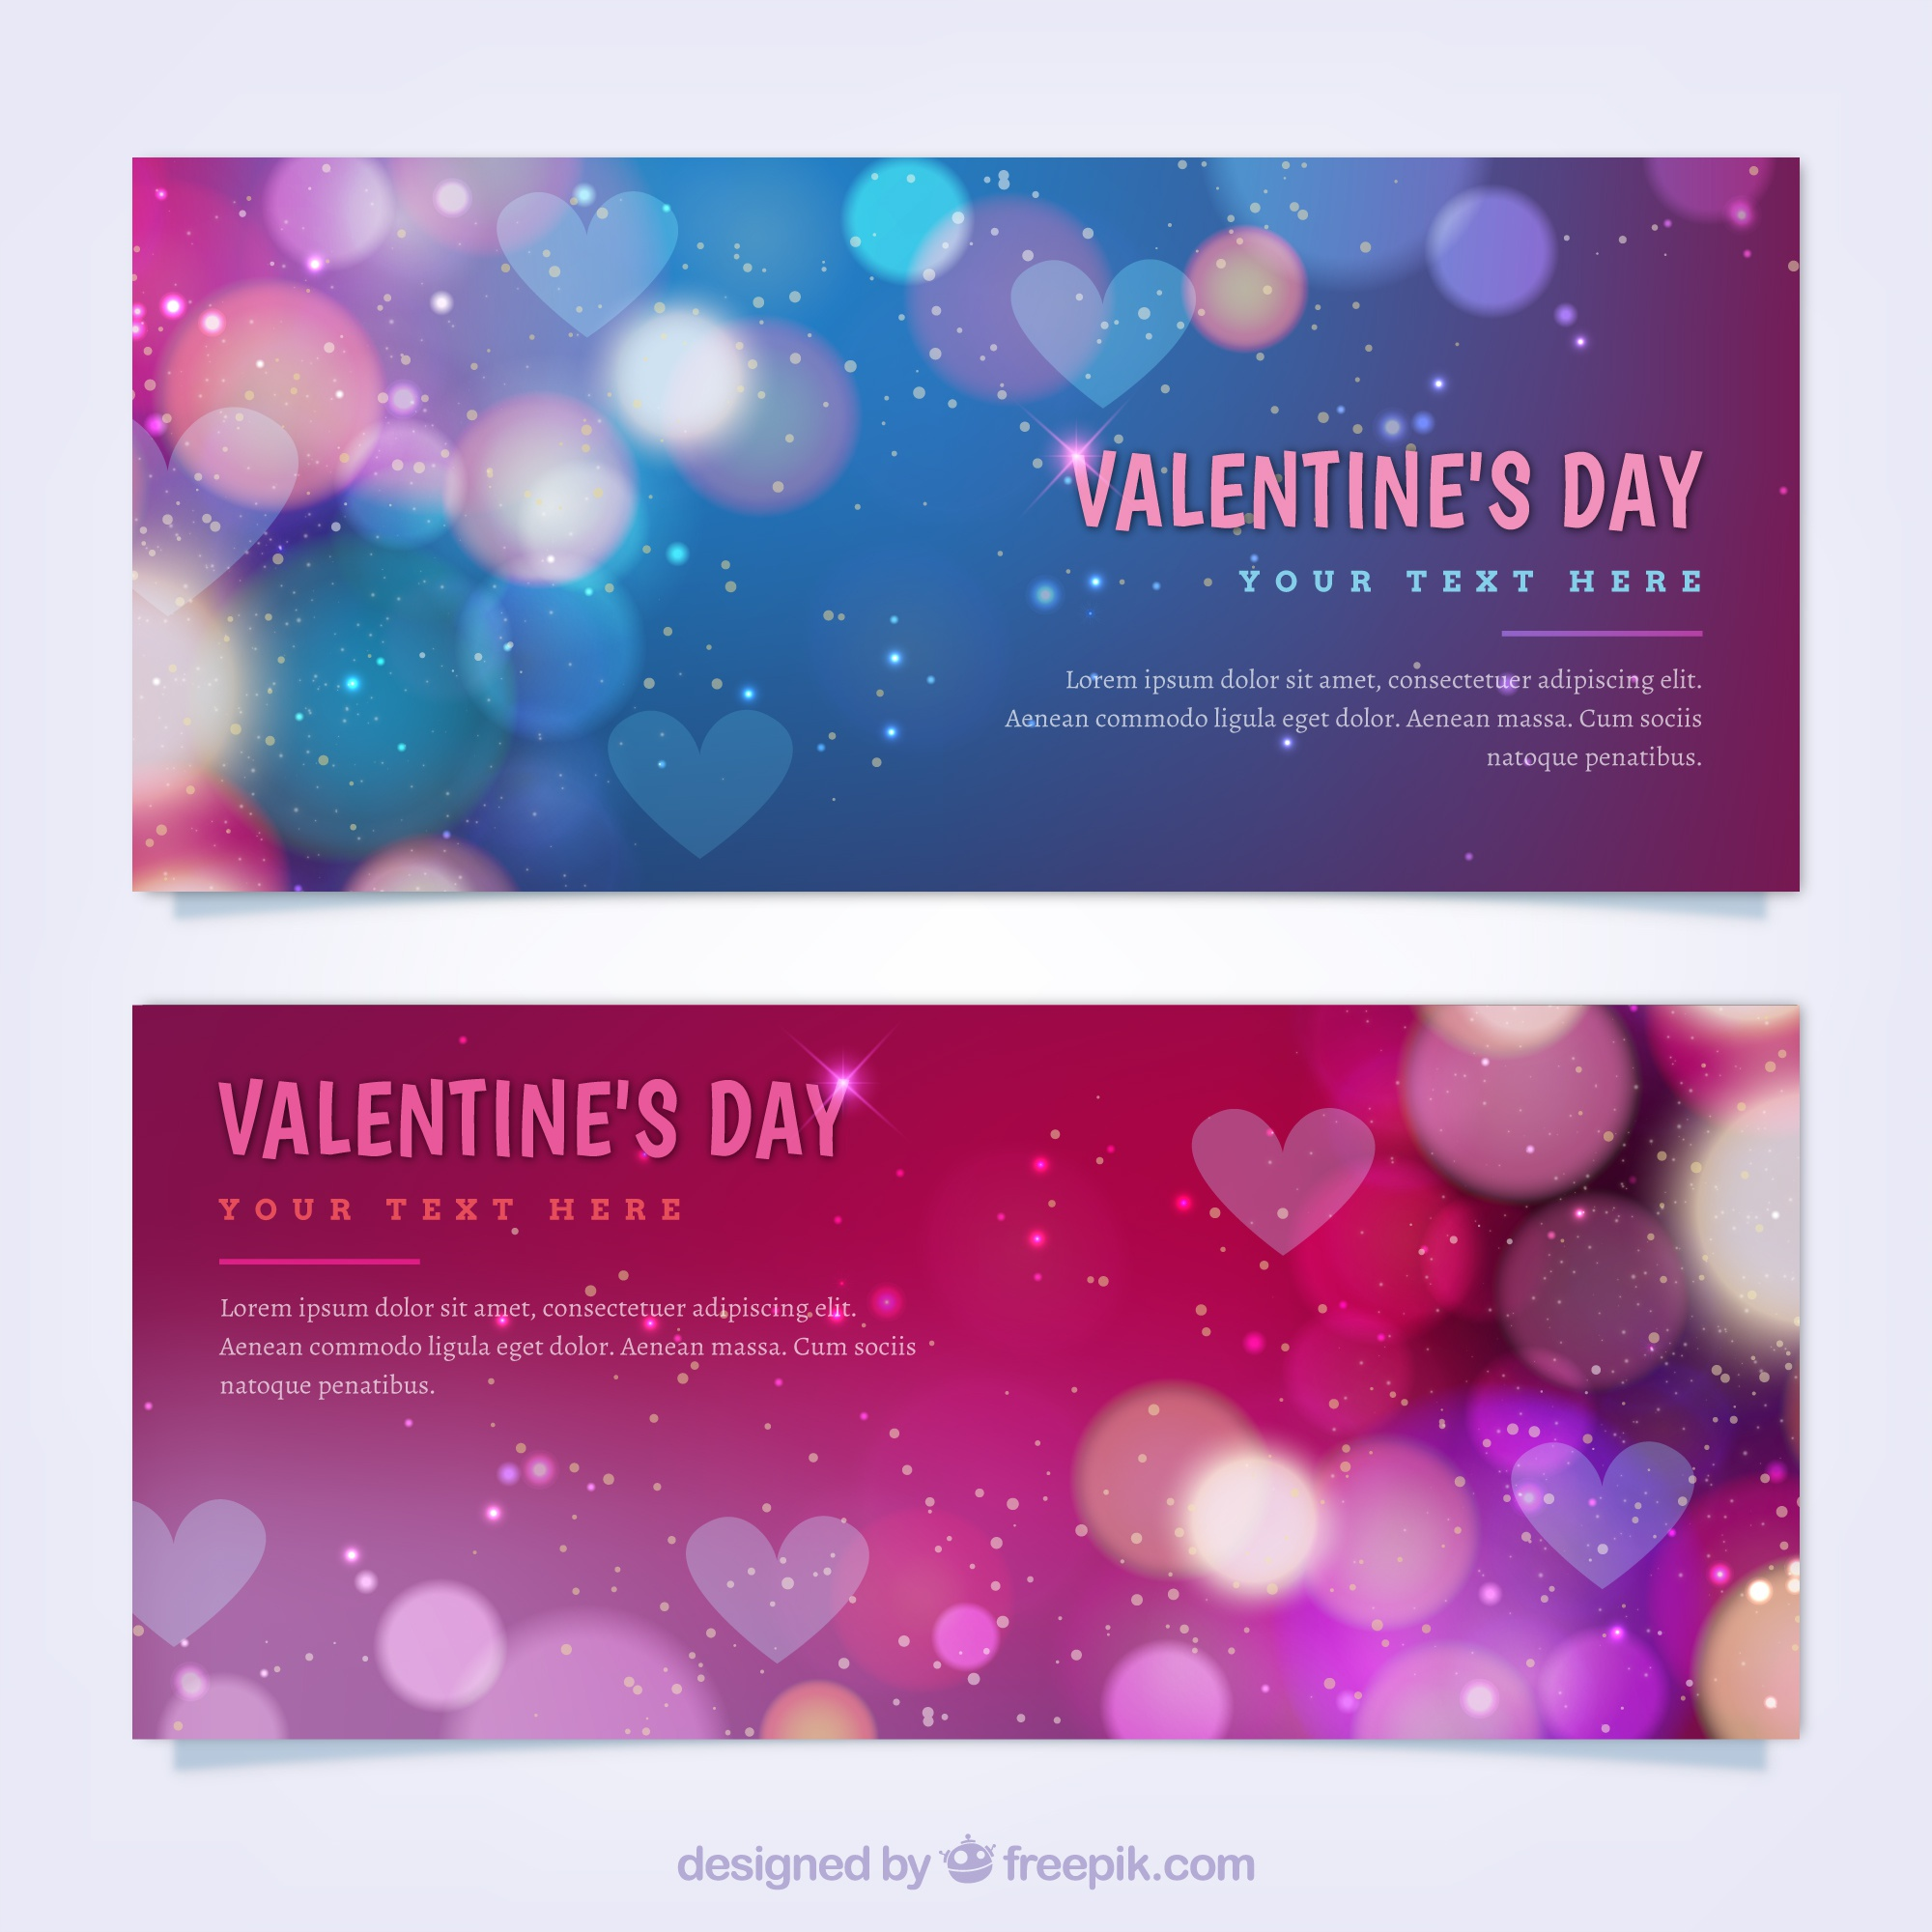 Colorful valentine's day banners with bokeh effect